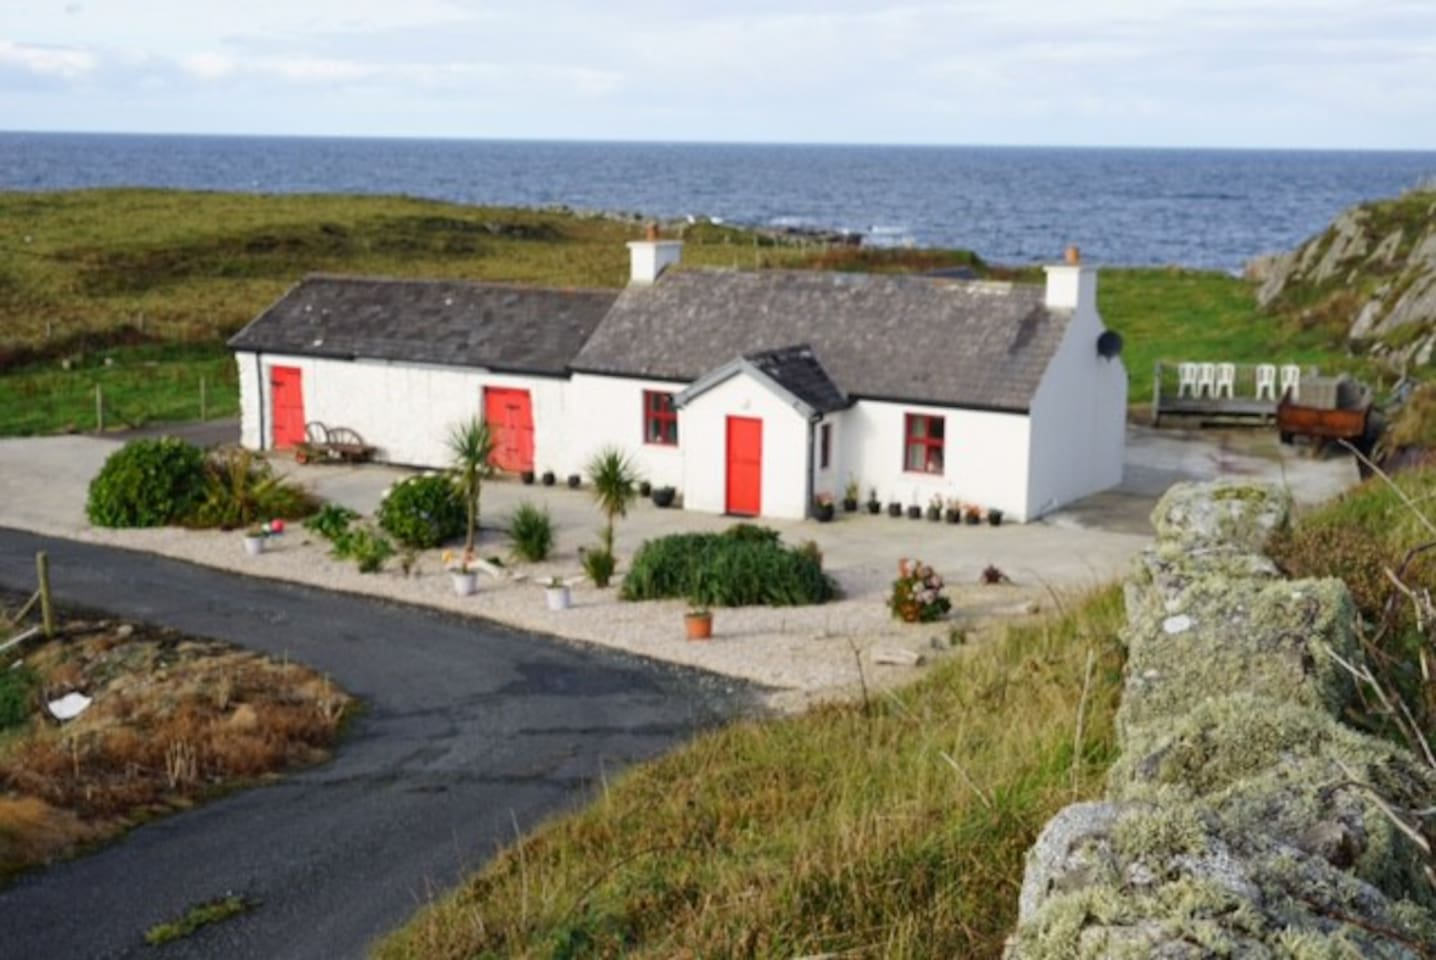 A peaceful haven on the edge of the Atlantic